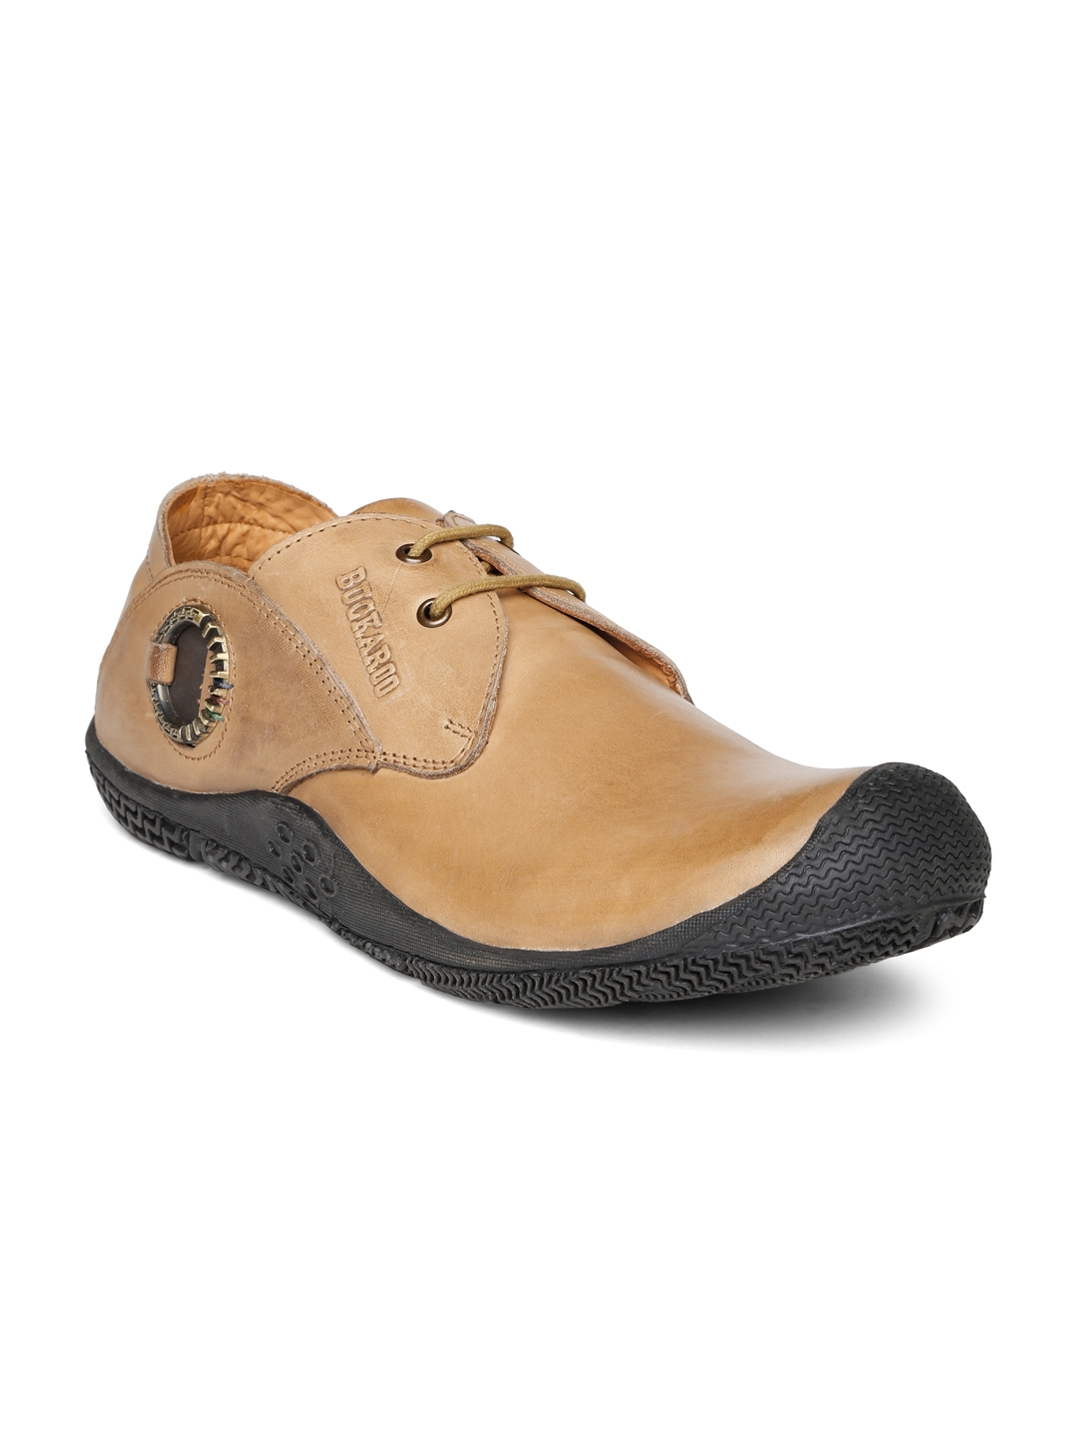 5e0b891156d Buy Buckaroo Men Brown Leather Casual Shoes - Casual Shoes for Men ...